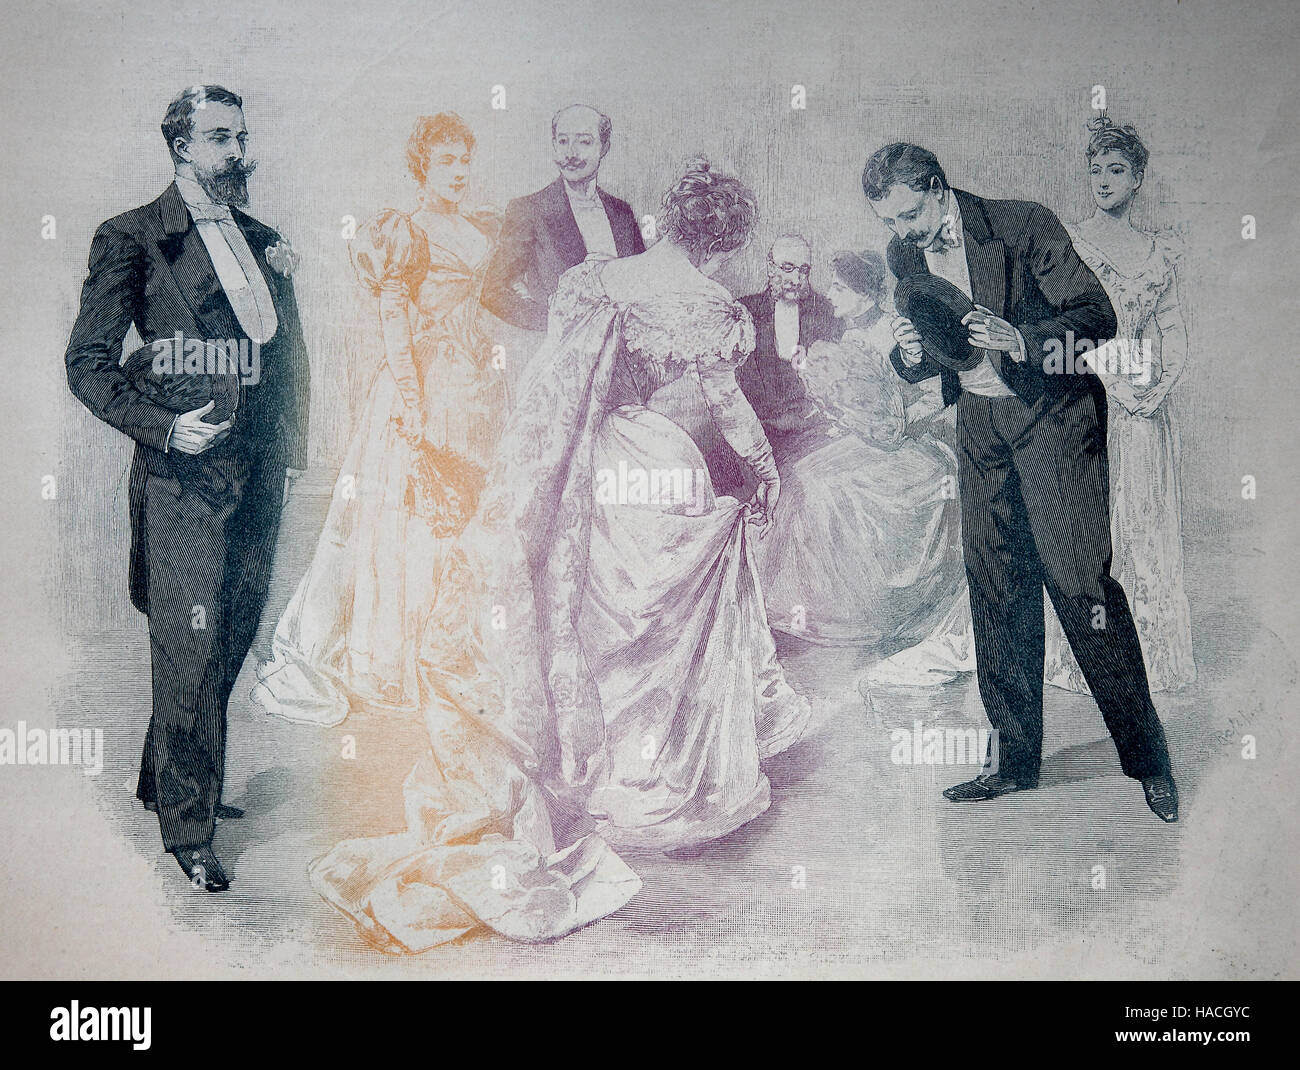 Les Lanciers or The Lancers is a square dance, a variant of the Quadrille, a set dance performed by four couples, - Stock Image